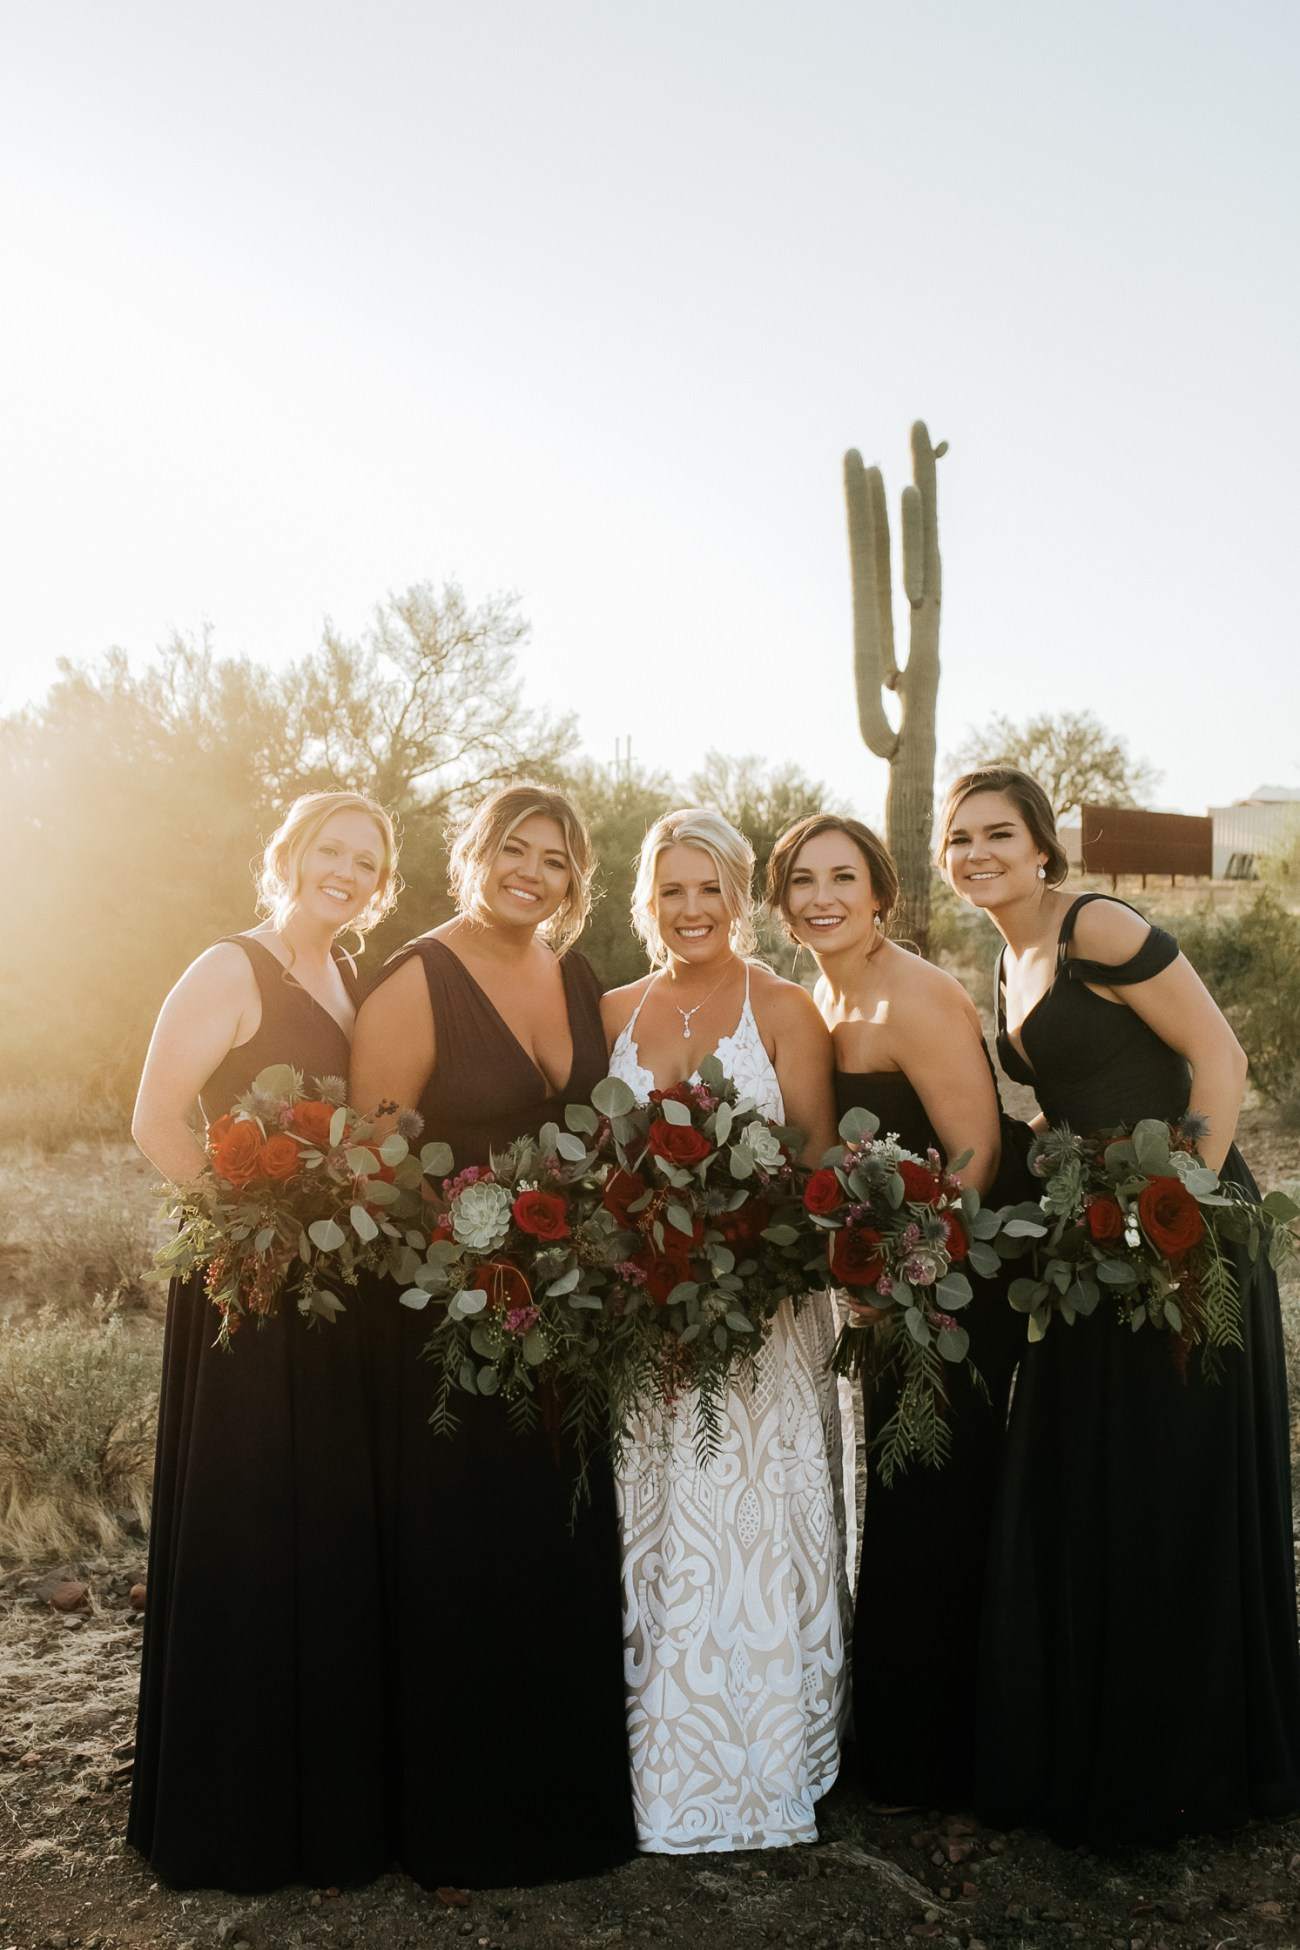 Megan Claire Photography | Arizona Wedding Photographer. Beautiful fall wedding in the desert at the Paseo in Apache Junction, Arizona near superstition mountains. bridal party photos @meganclairephoto